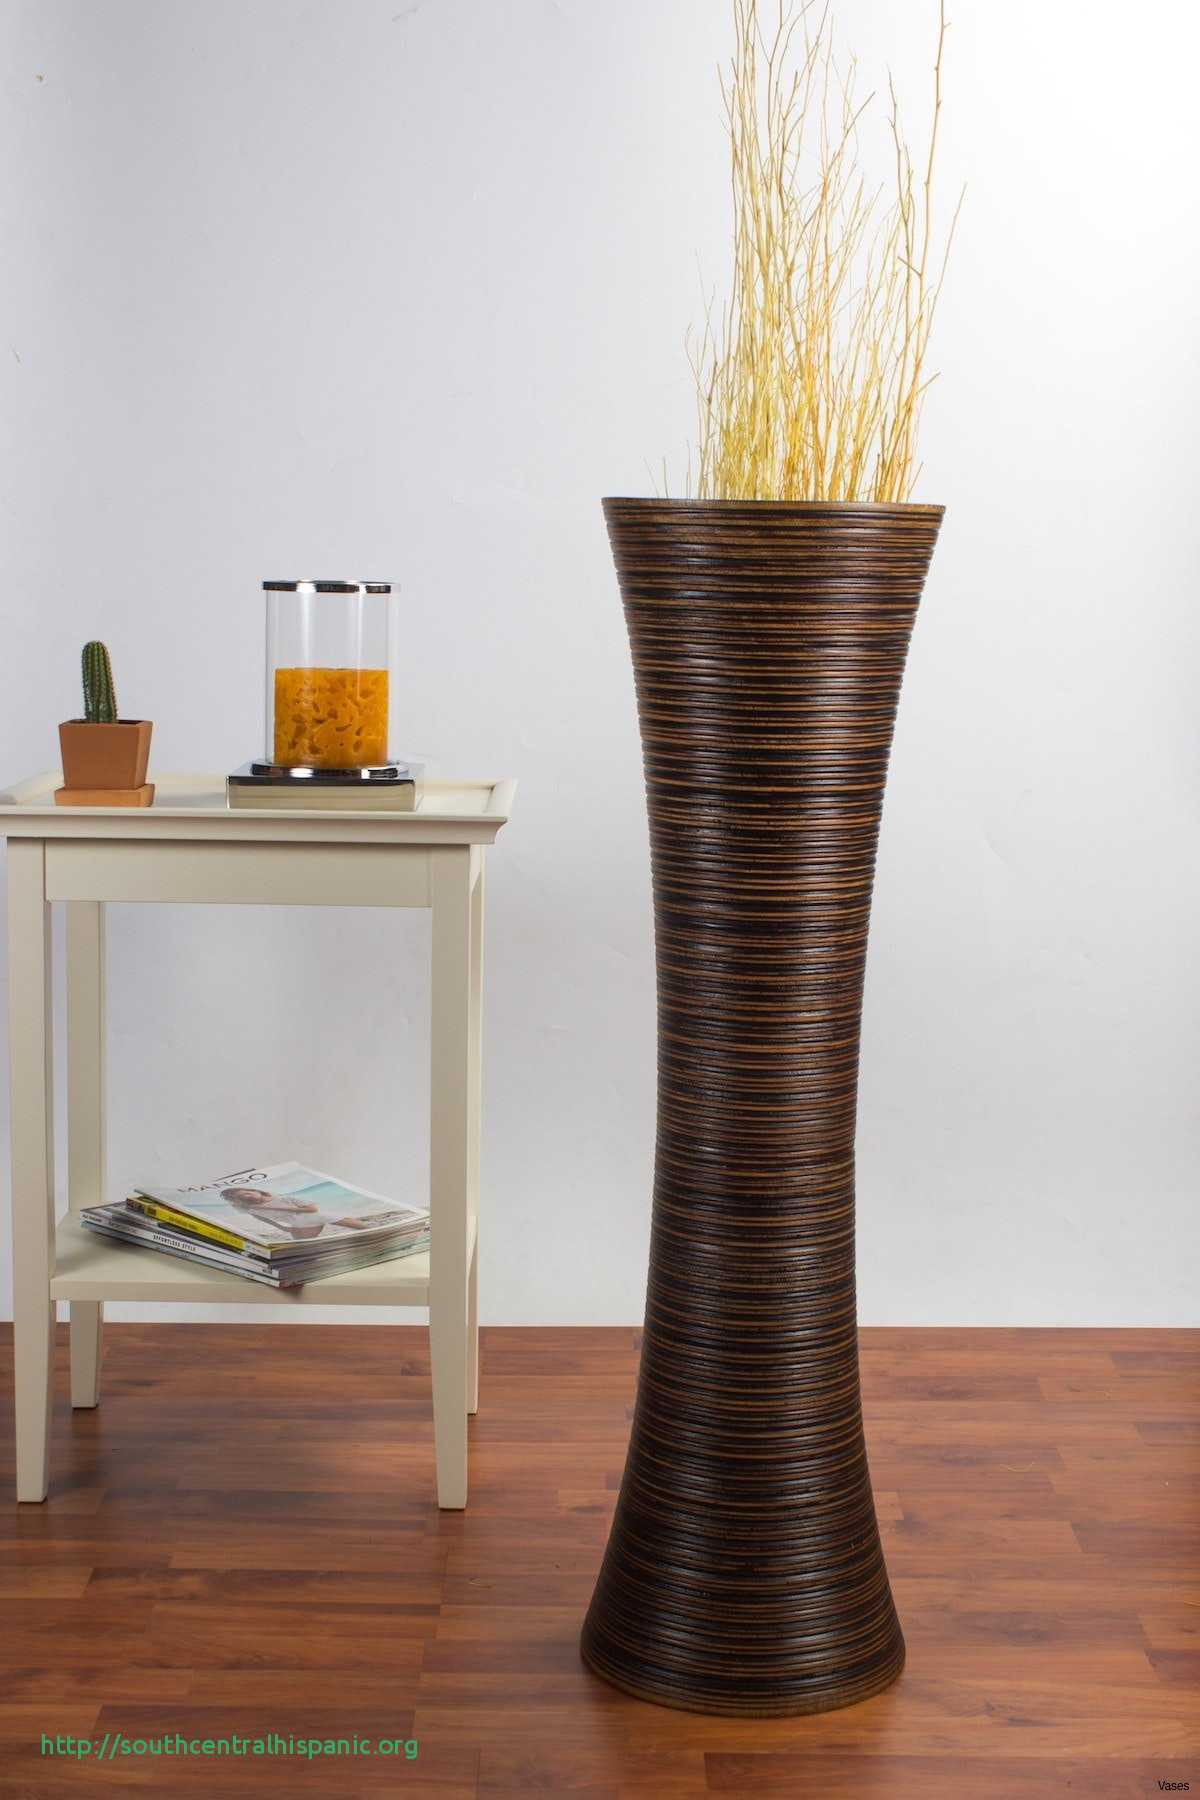 elegant expressions vase of 17 a‰lagant perl floor ideas blog throughout decorative floor vases fresh d dkbrw 5749 1h vases tall brown i 0d floor uk square